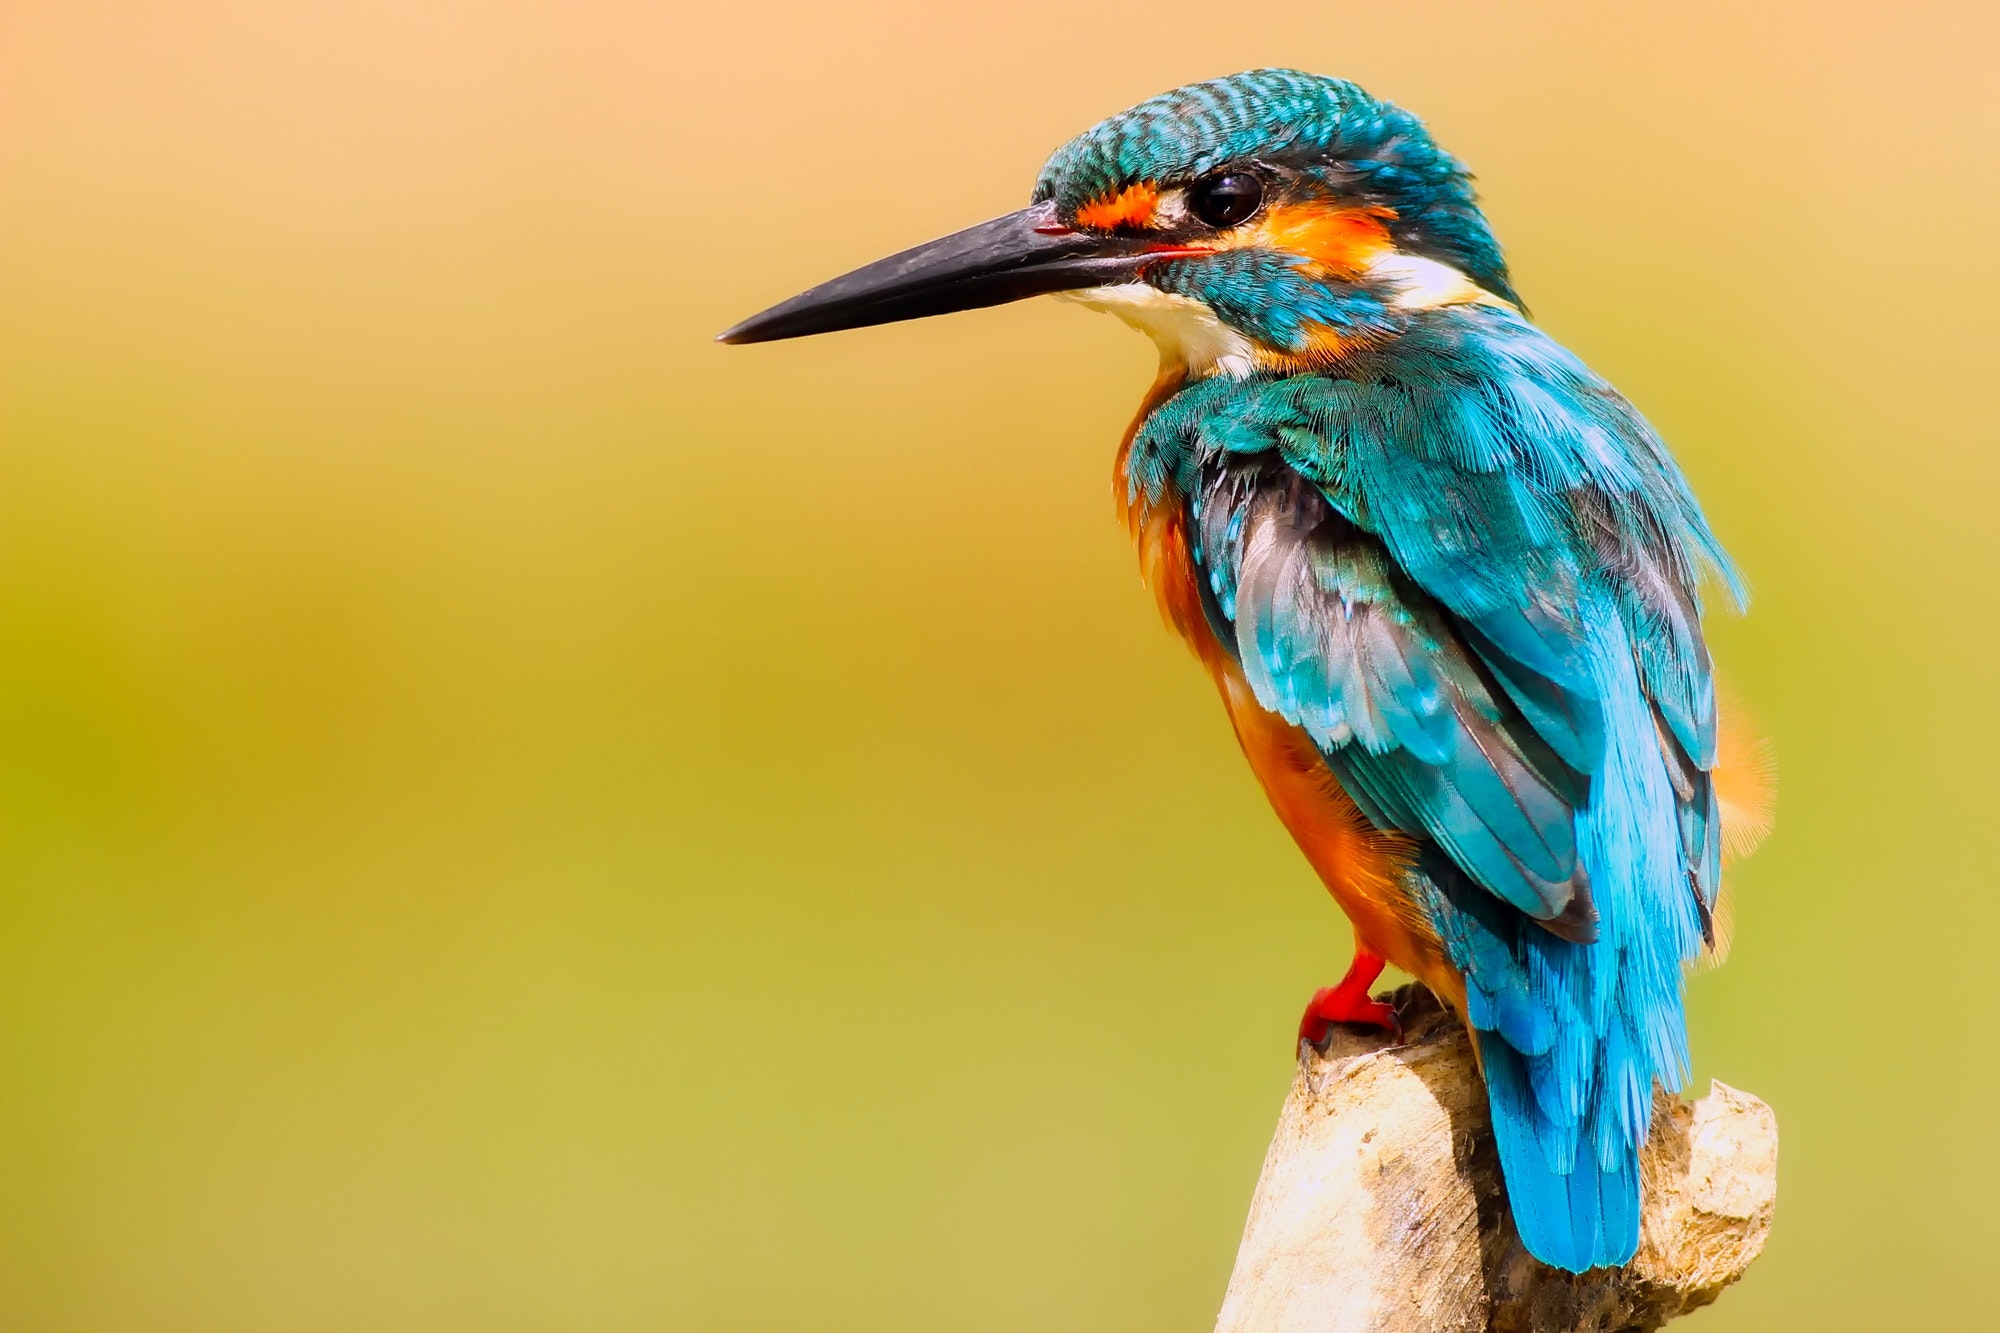 999+ Colorful Bird Pictures · Pexels · Free Stock Photos